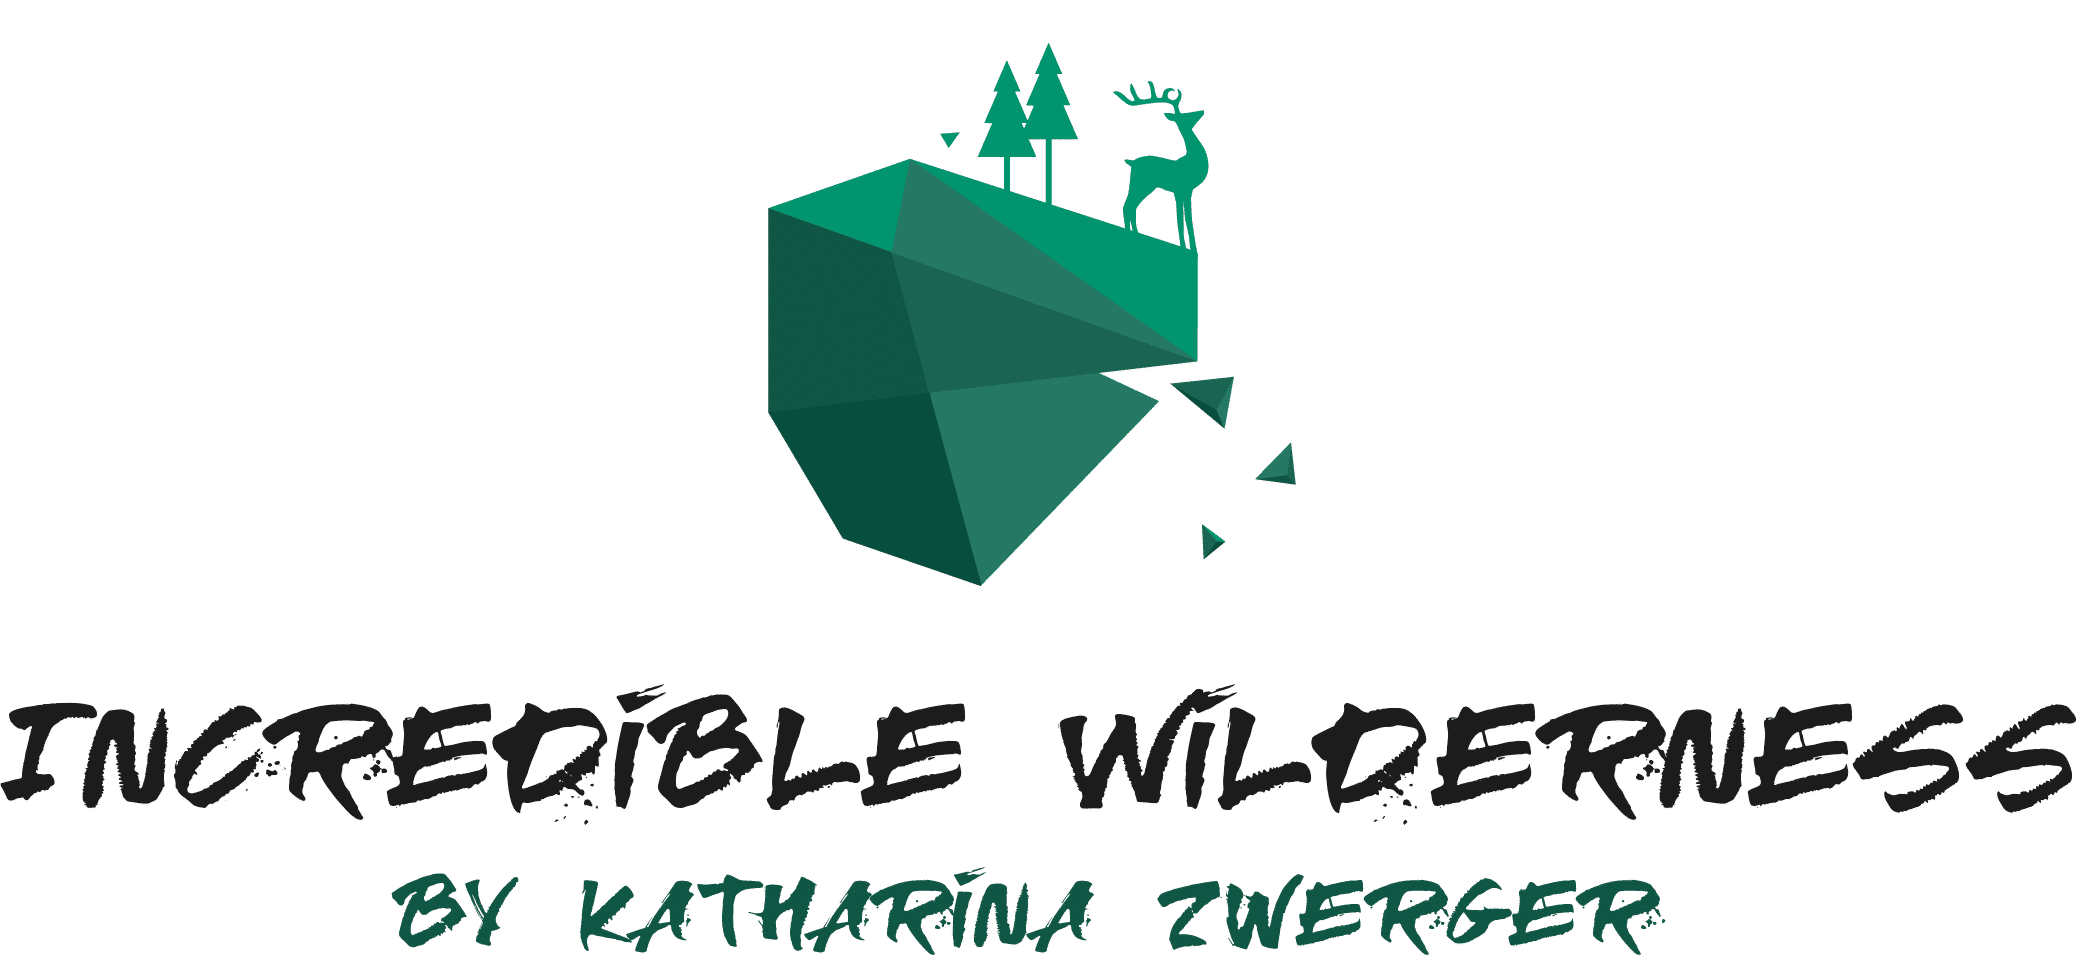 Incredible Wilderness Logo by Katharina Zwerger